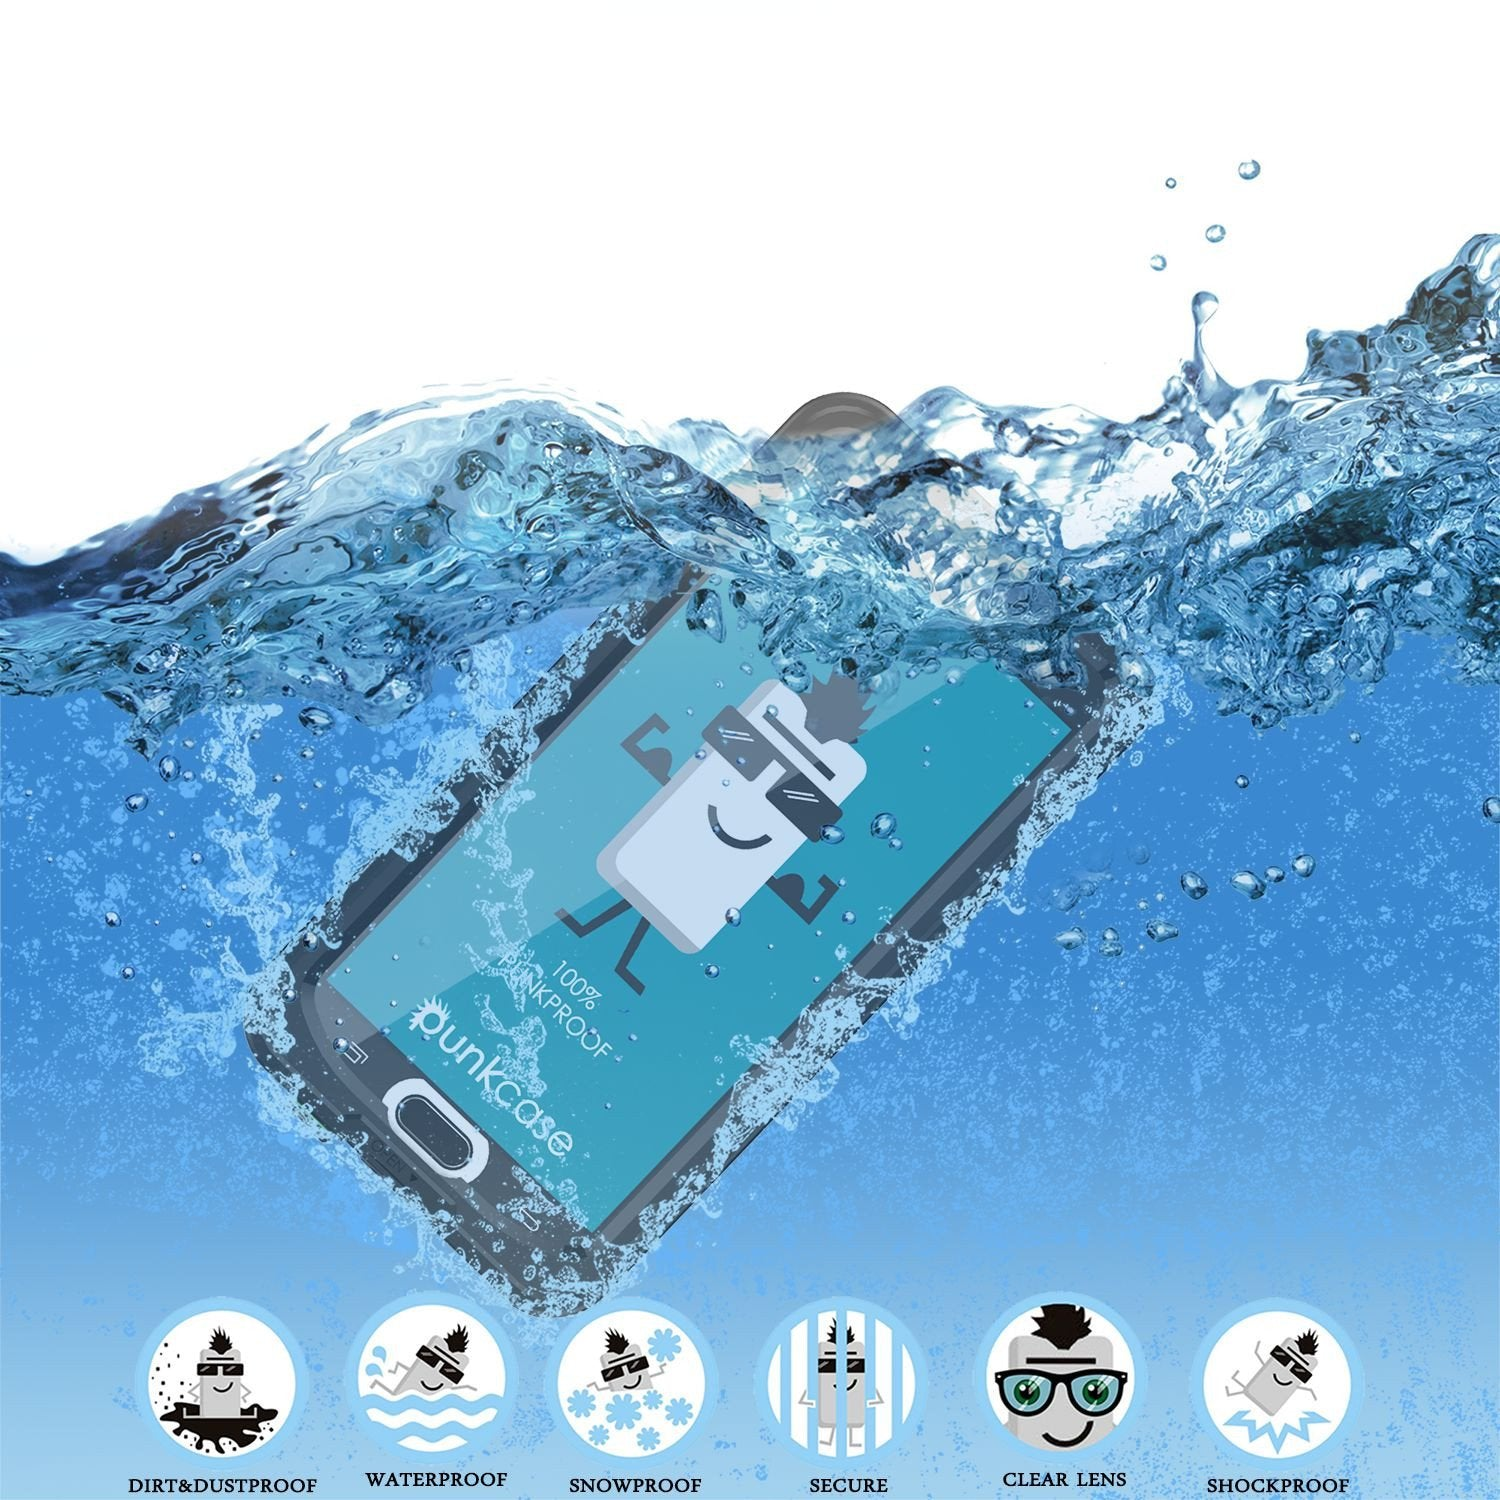 Galaxy Note 5 Waterproof Case, Punkcase StudStar Black Shock/Dirt/Snow Proof | Lifetime Warranty - PunkCase NZ